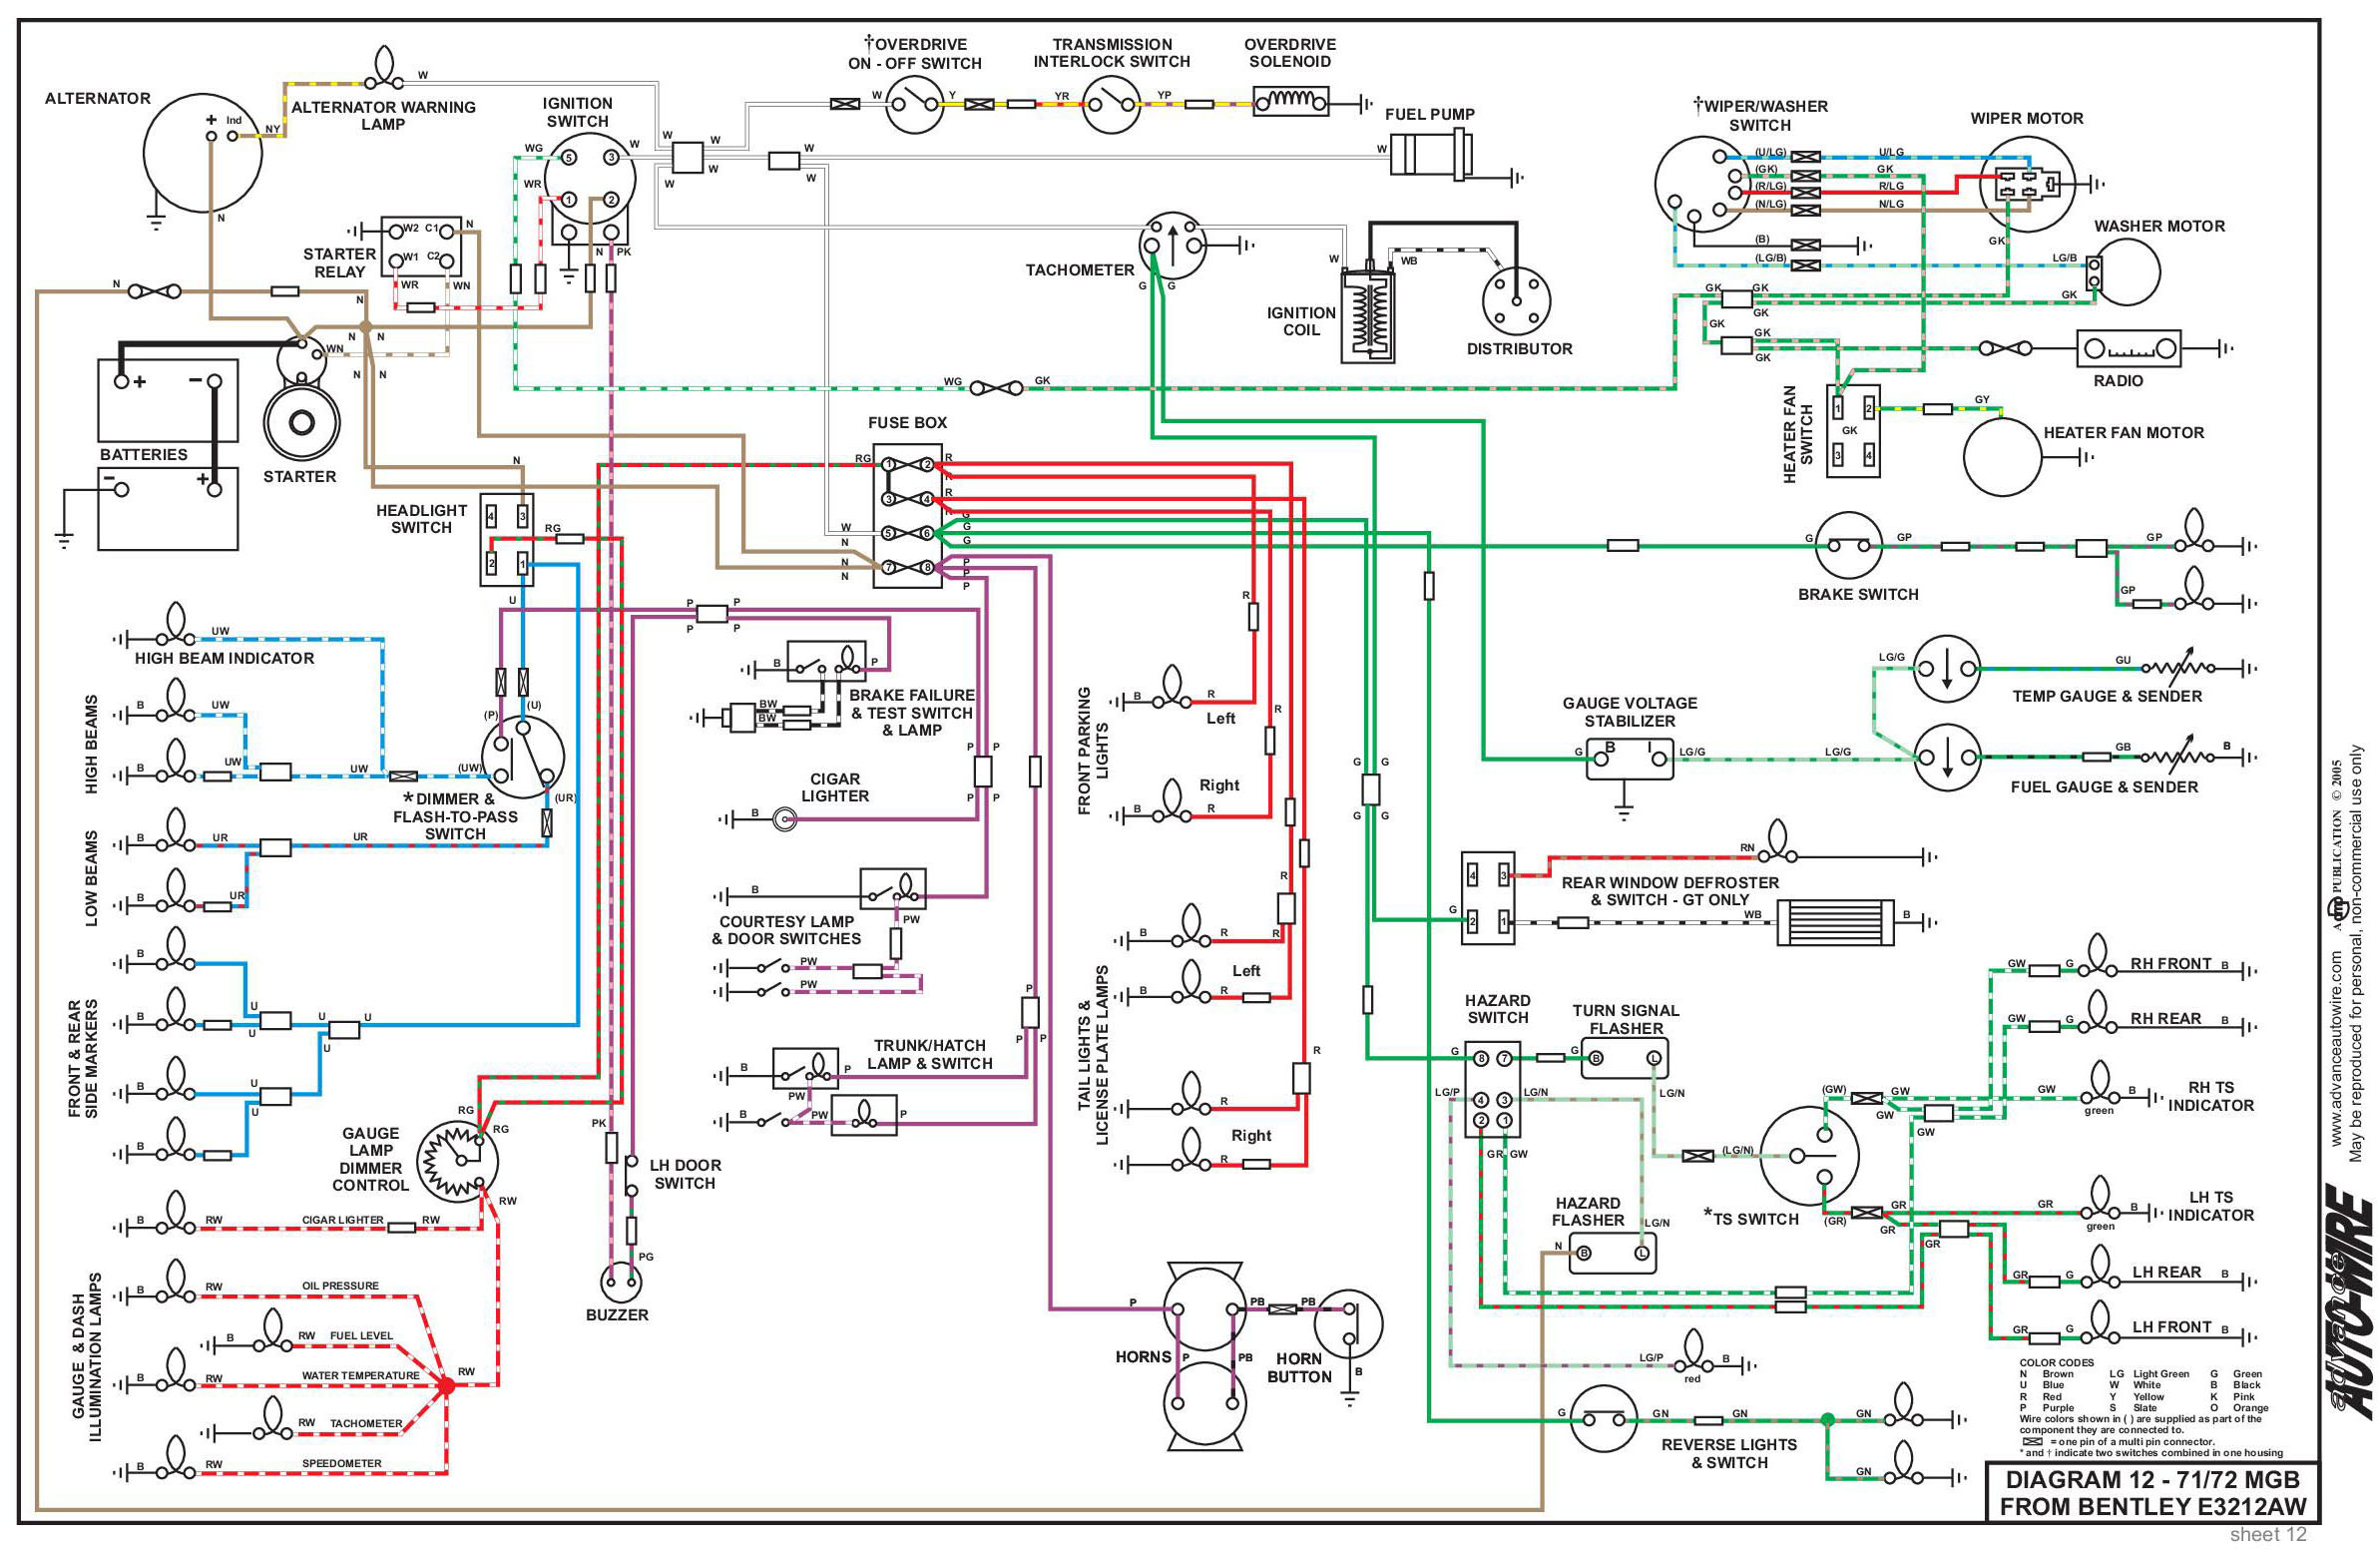 Electrical System Single Headlight Schematic Click Image For Larger View 71 72 Mgb